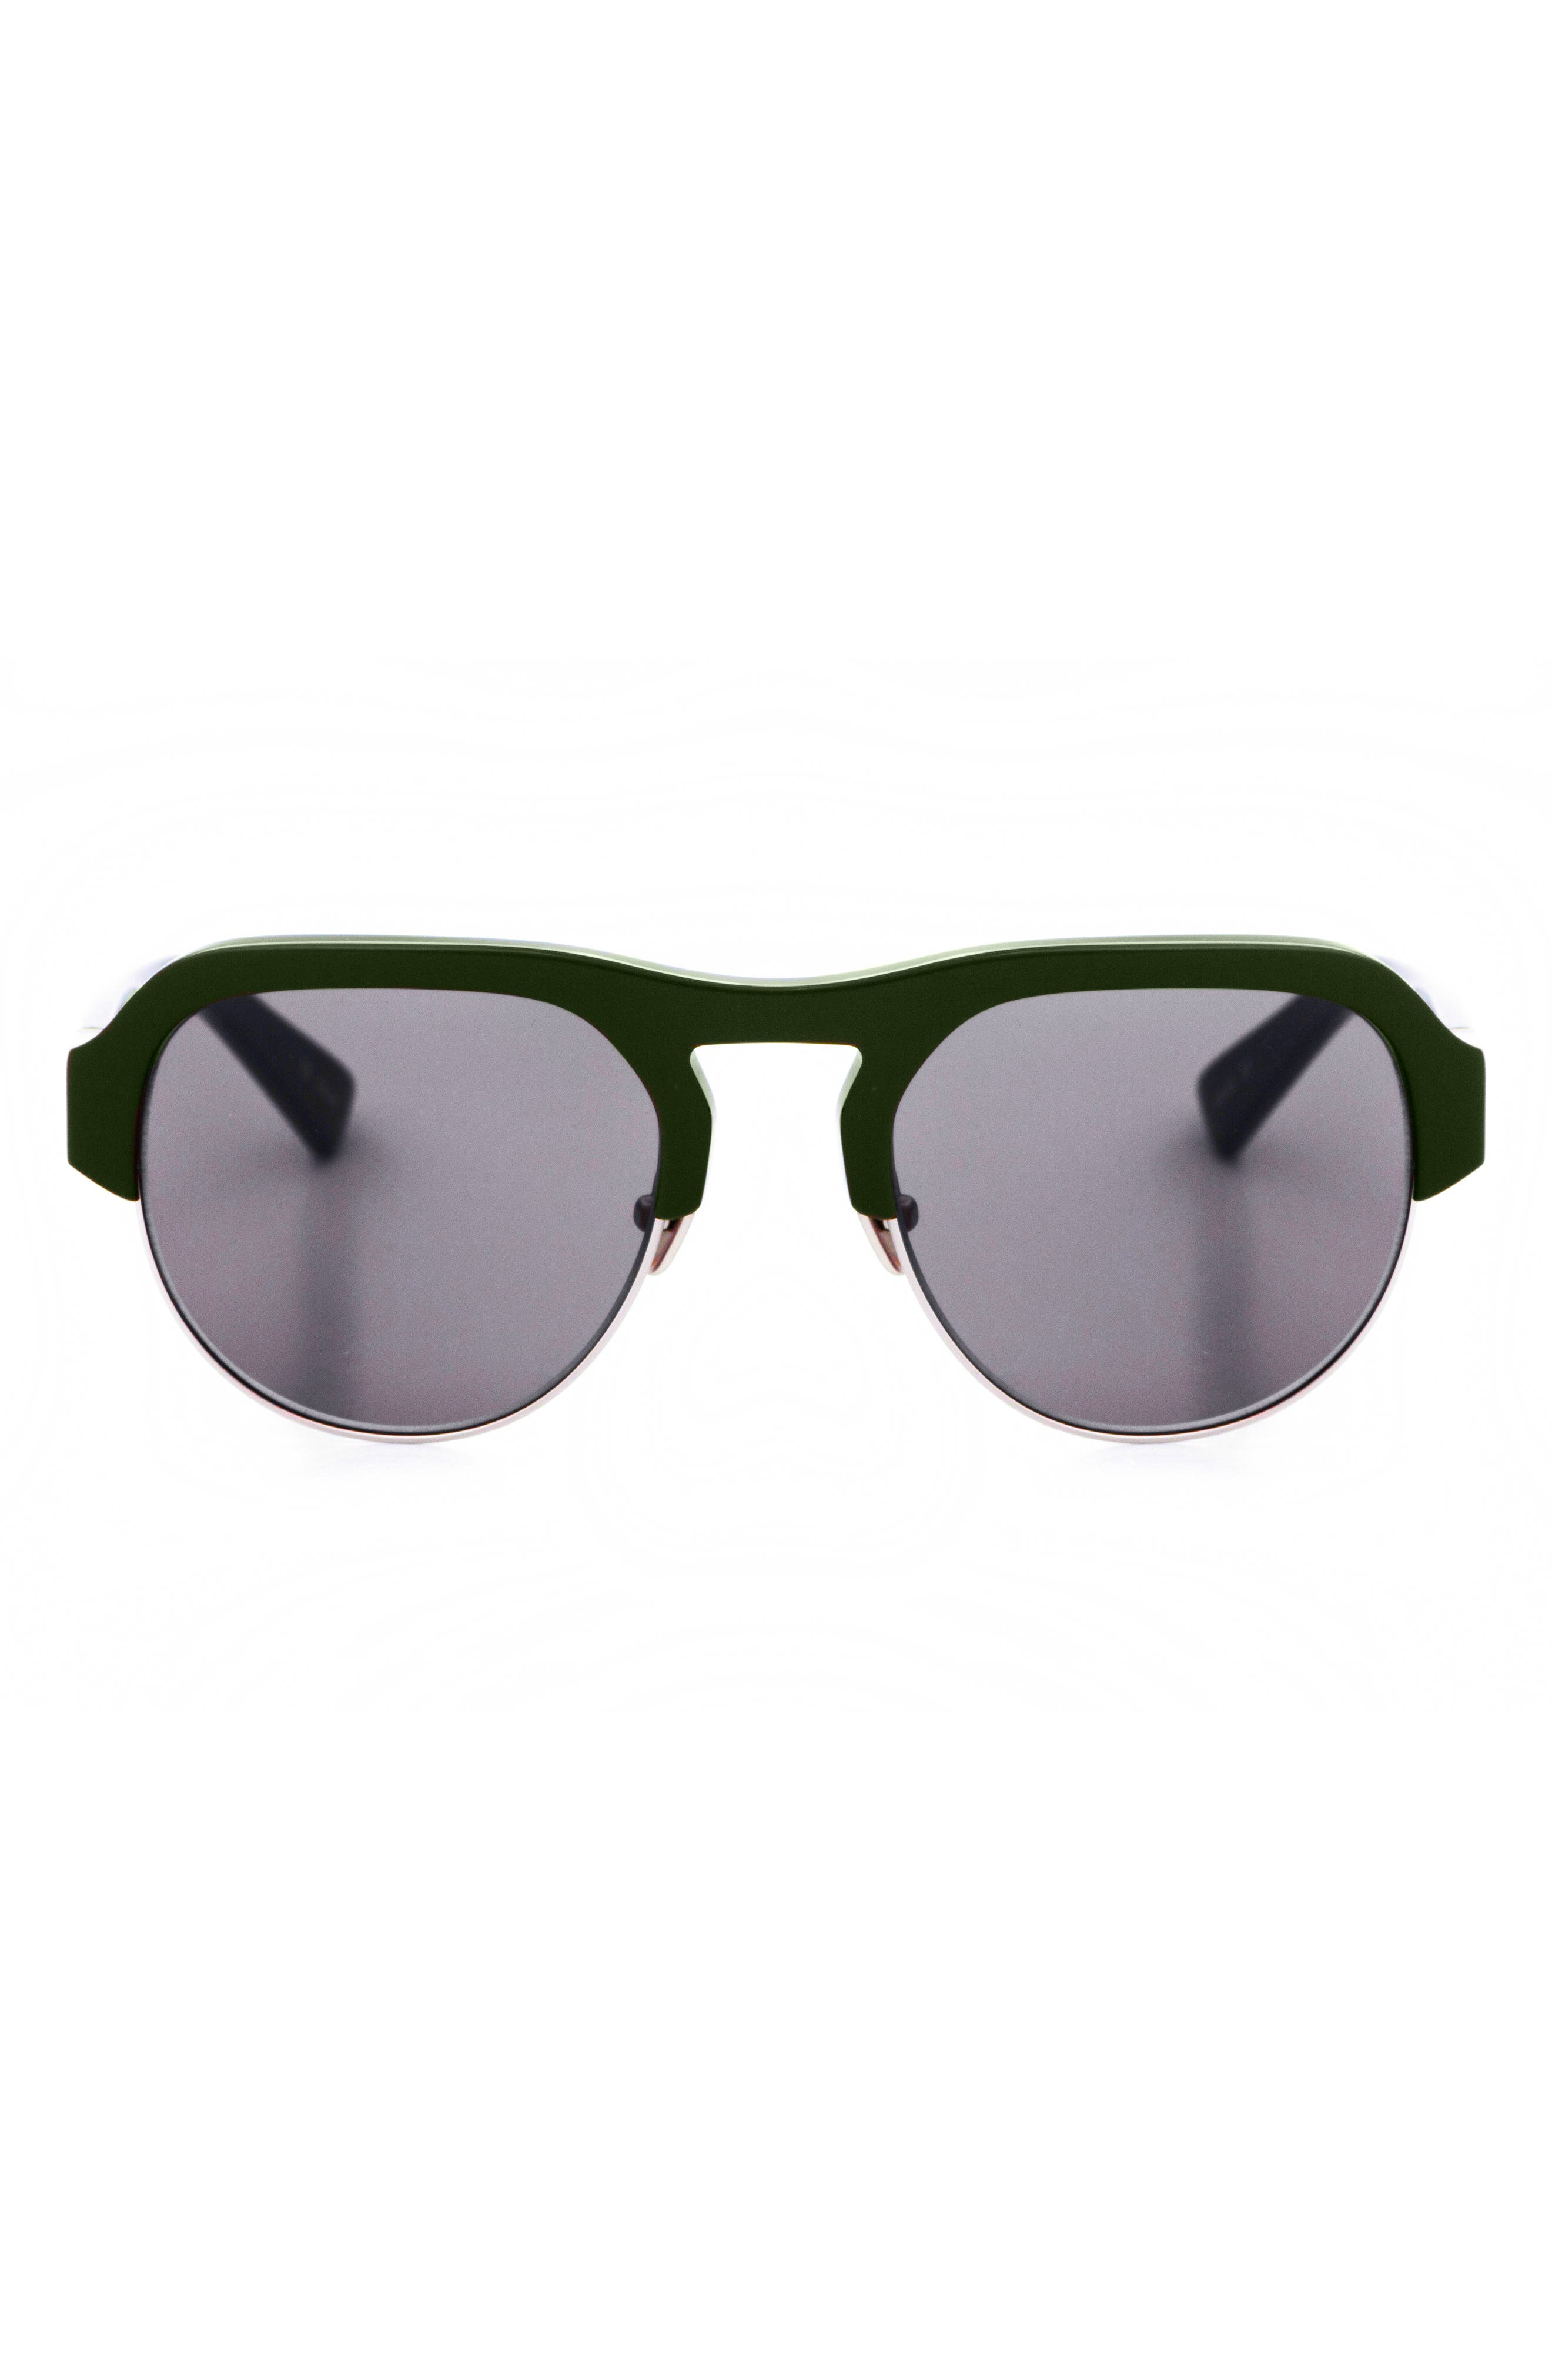 Nomad 52mm Sunglasses,                             Alternate thumbnail 3, color,                             OLIVE/ SILVER